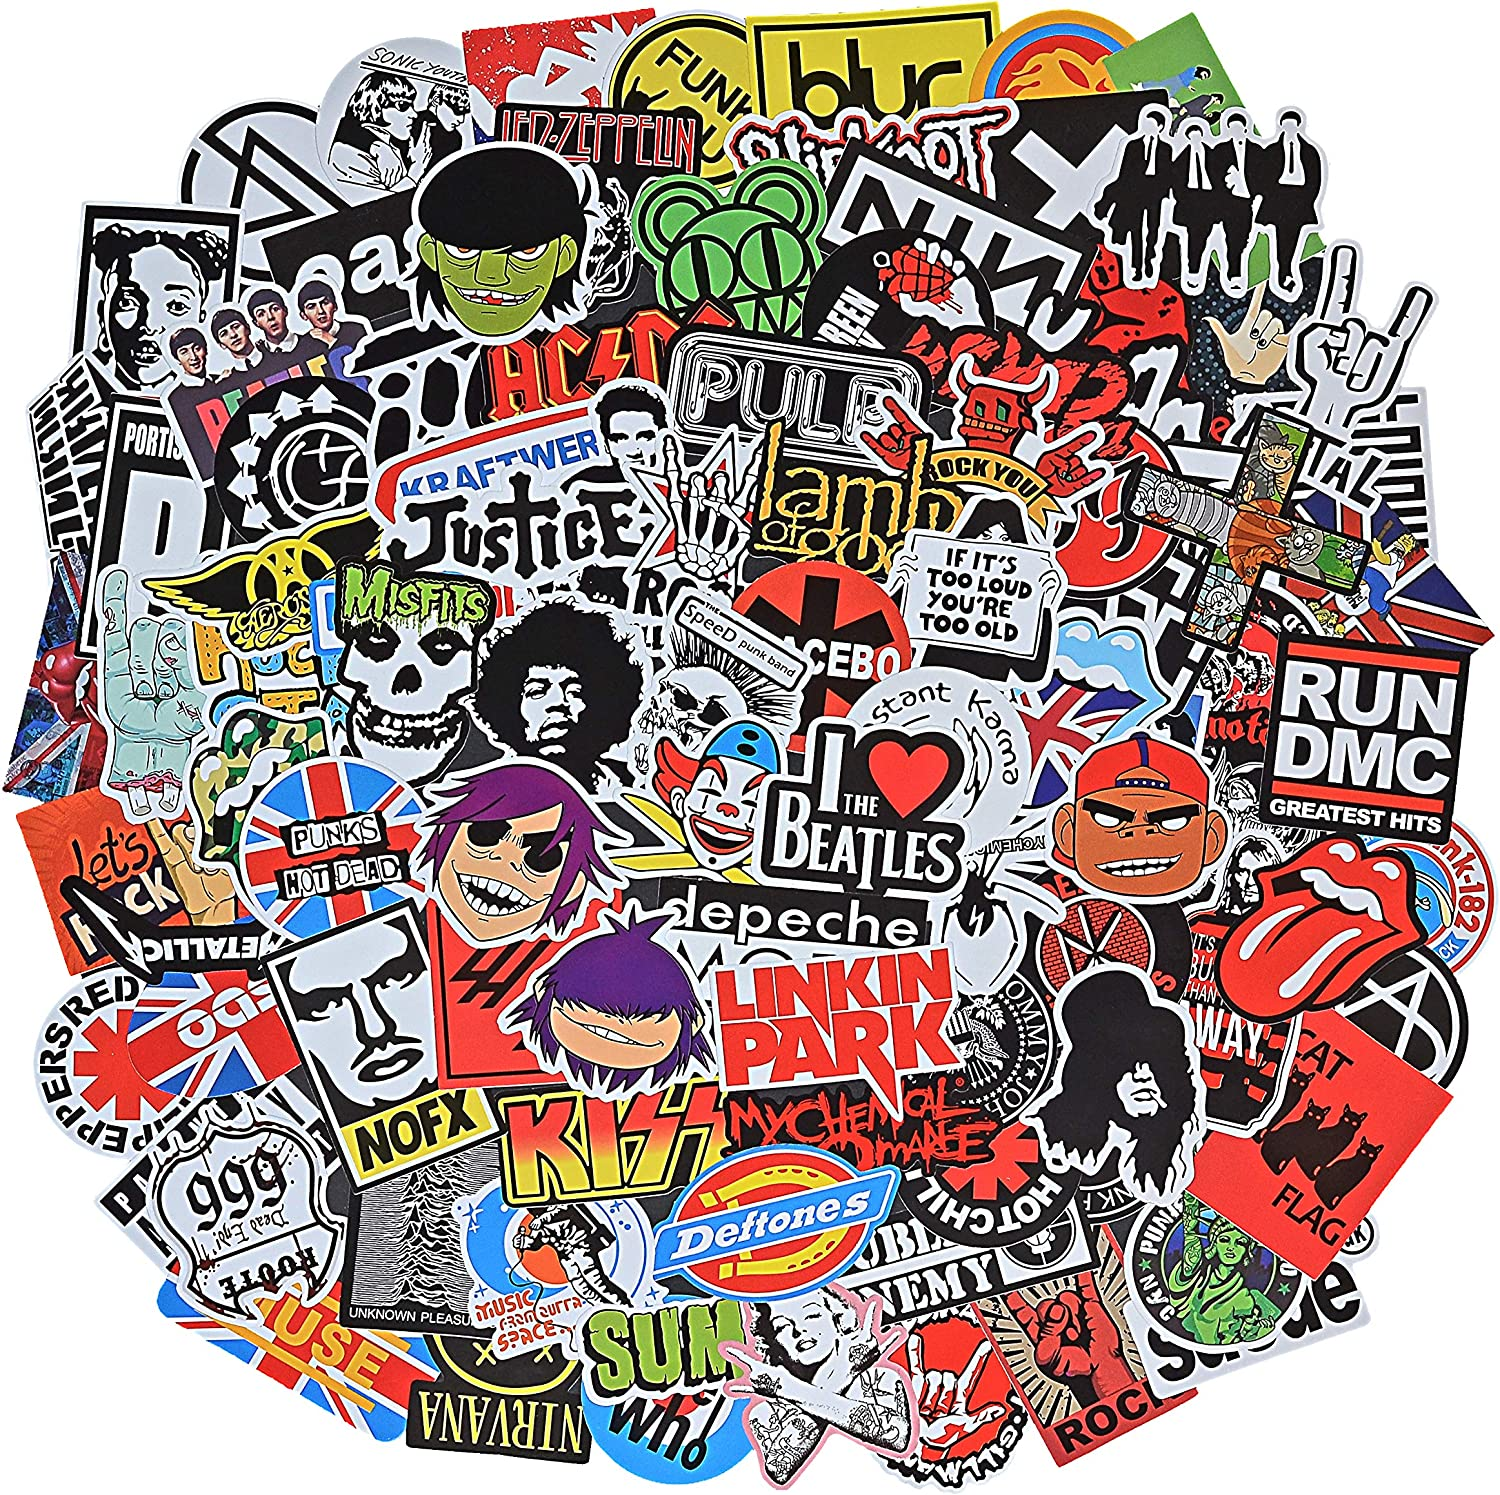 Band Stickers Pack Rock Roll Stickers -100 Pcs Vinyl Waterproof Stickers for Personalize Laptop, Electronic Organ, Guitar, Piano, Skateboard, Luggage Graffiti Decals (Stickers - B)